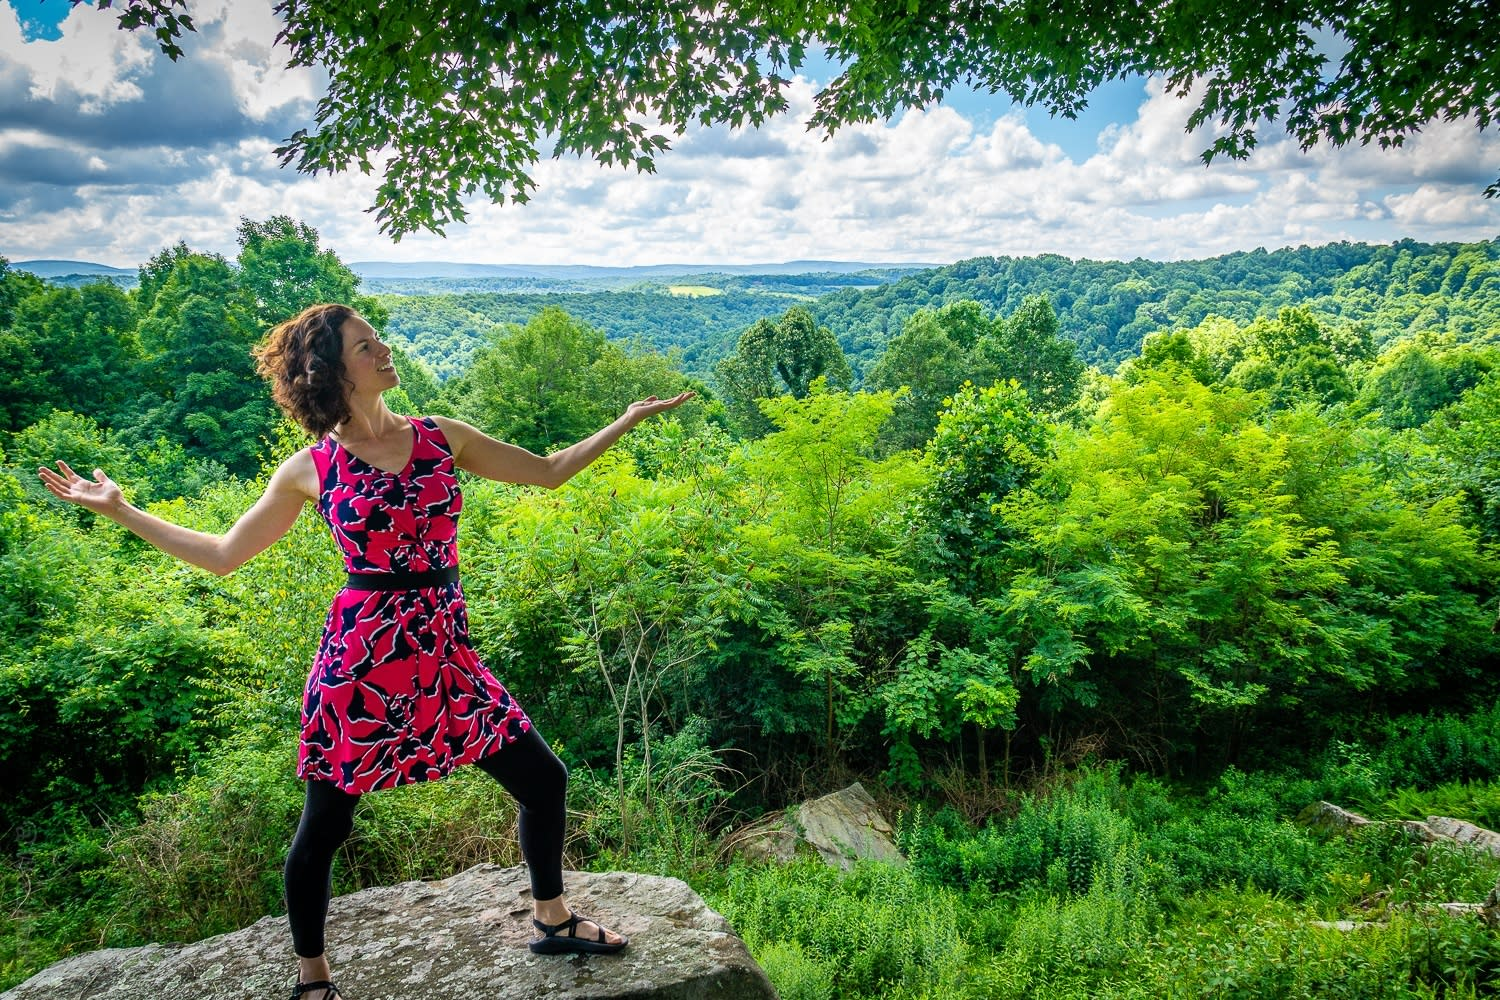 Behold the beautiful landscape of the Laurel Highlands in southwestern Pennsylvania!